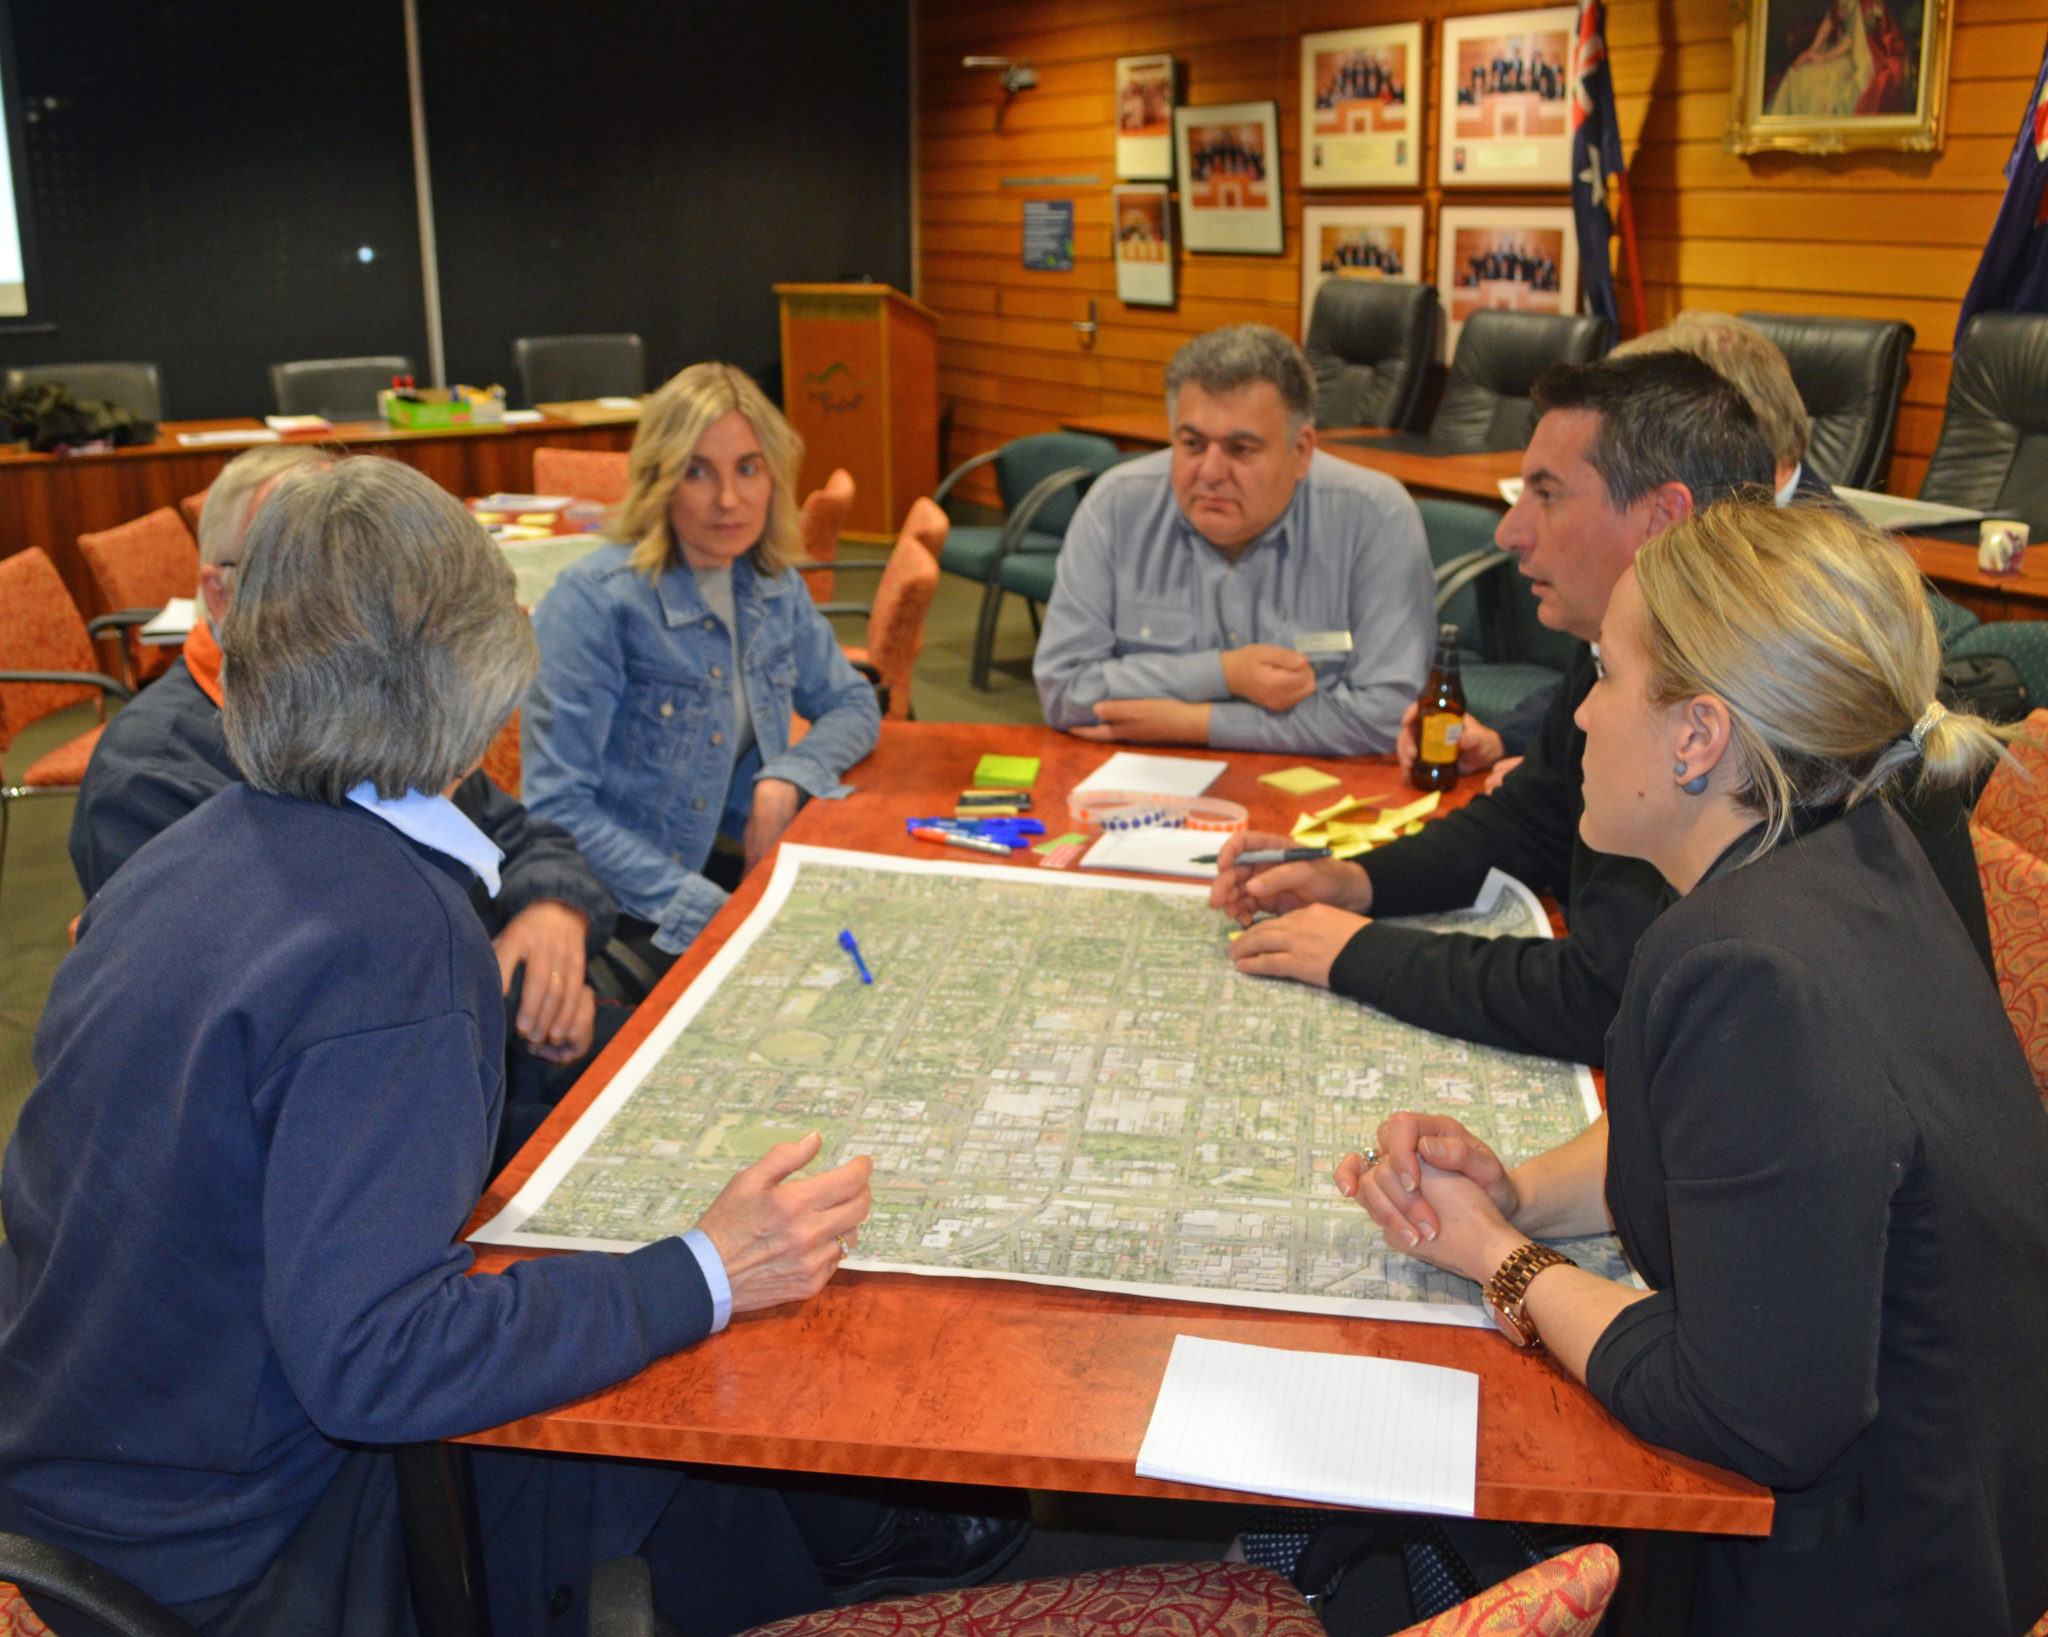 About 40 people came to one of the workshops held to discuss plans for OCFutureCity.